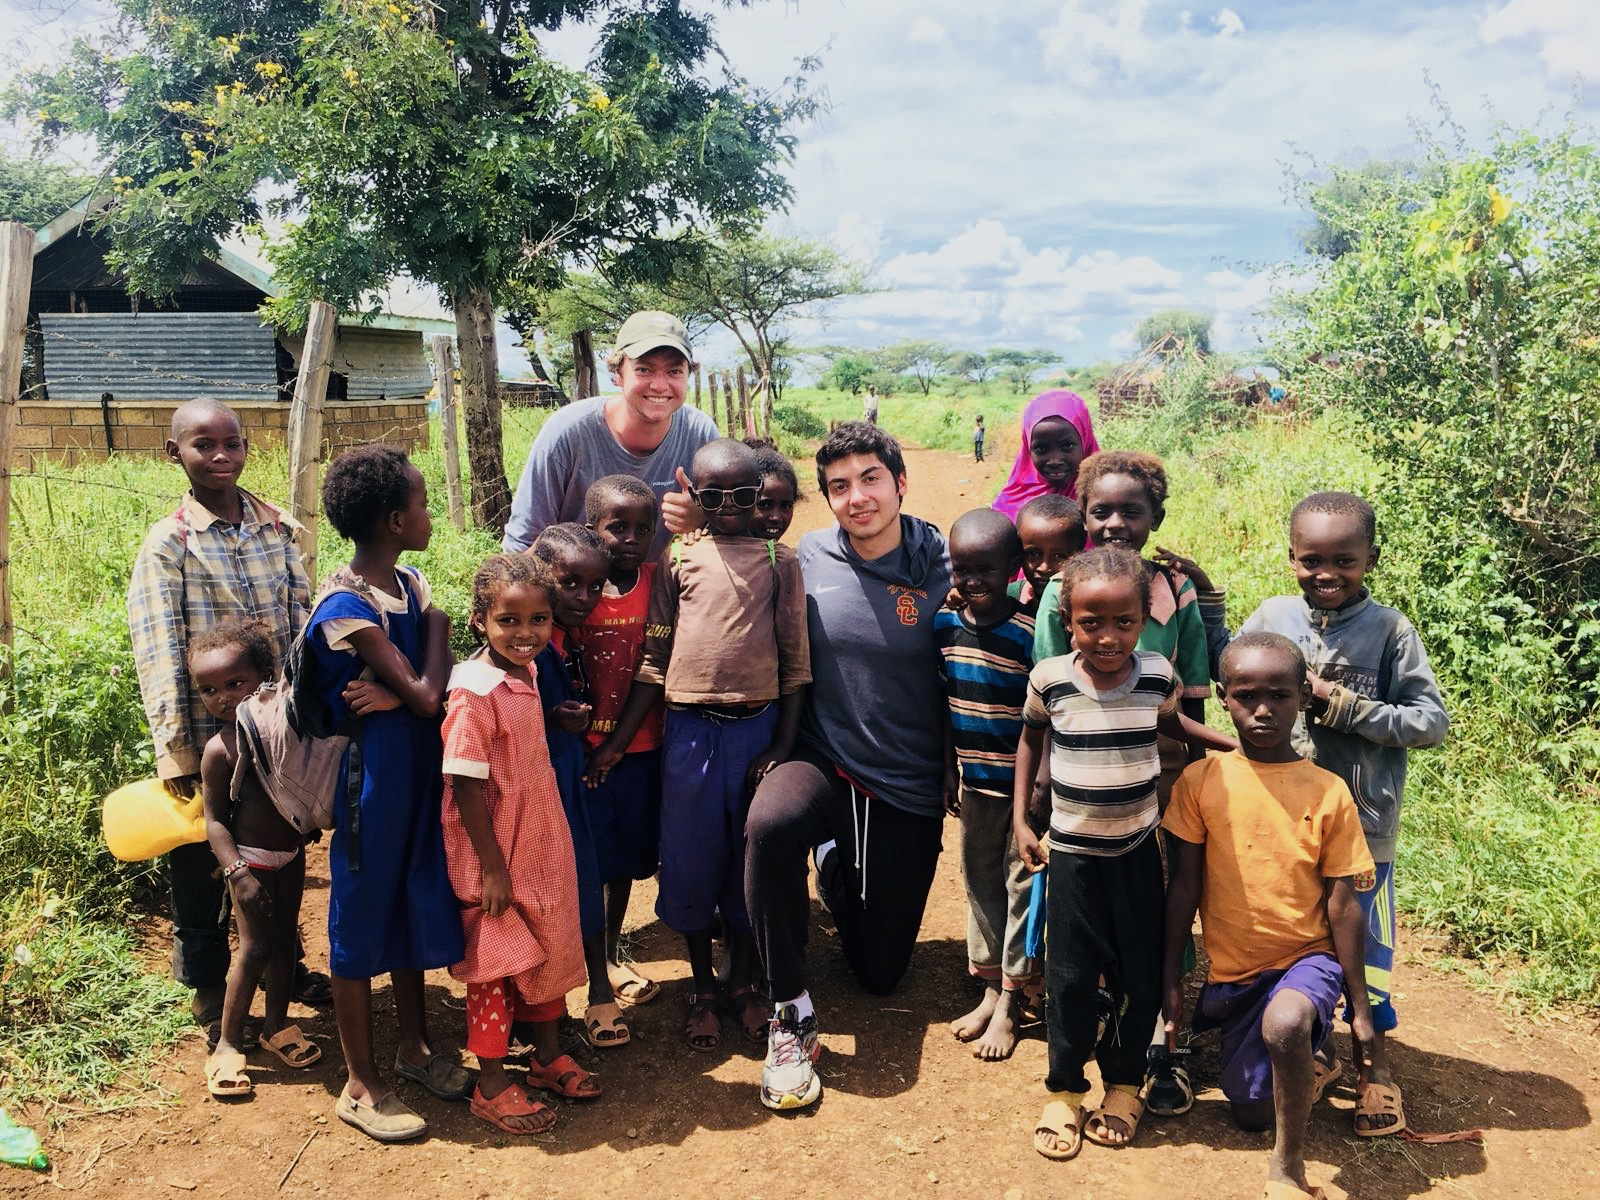 Spending time with school children in the Gambella village during the May 2018 assessment trip.